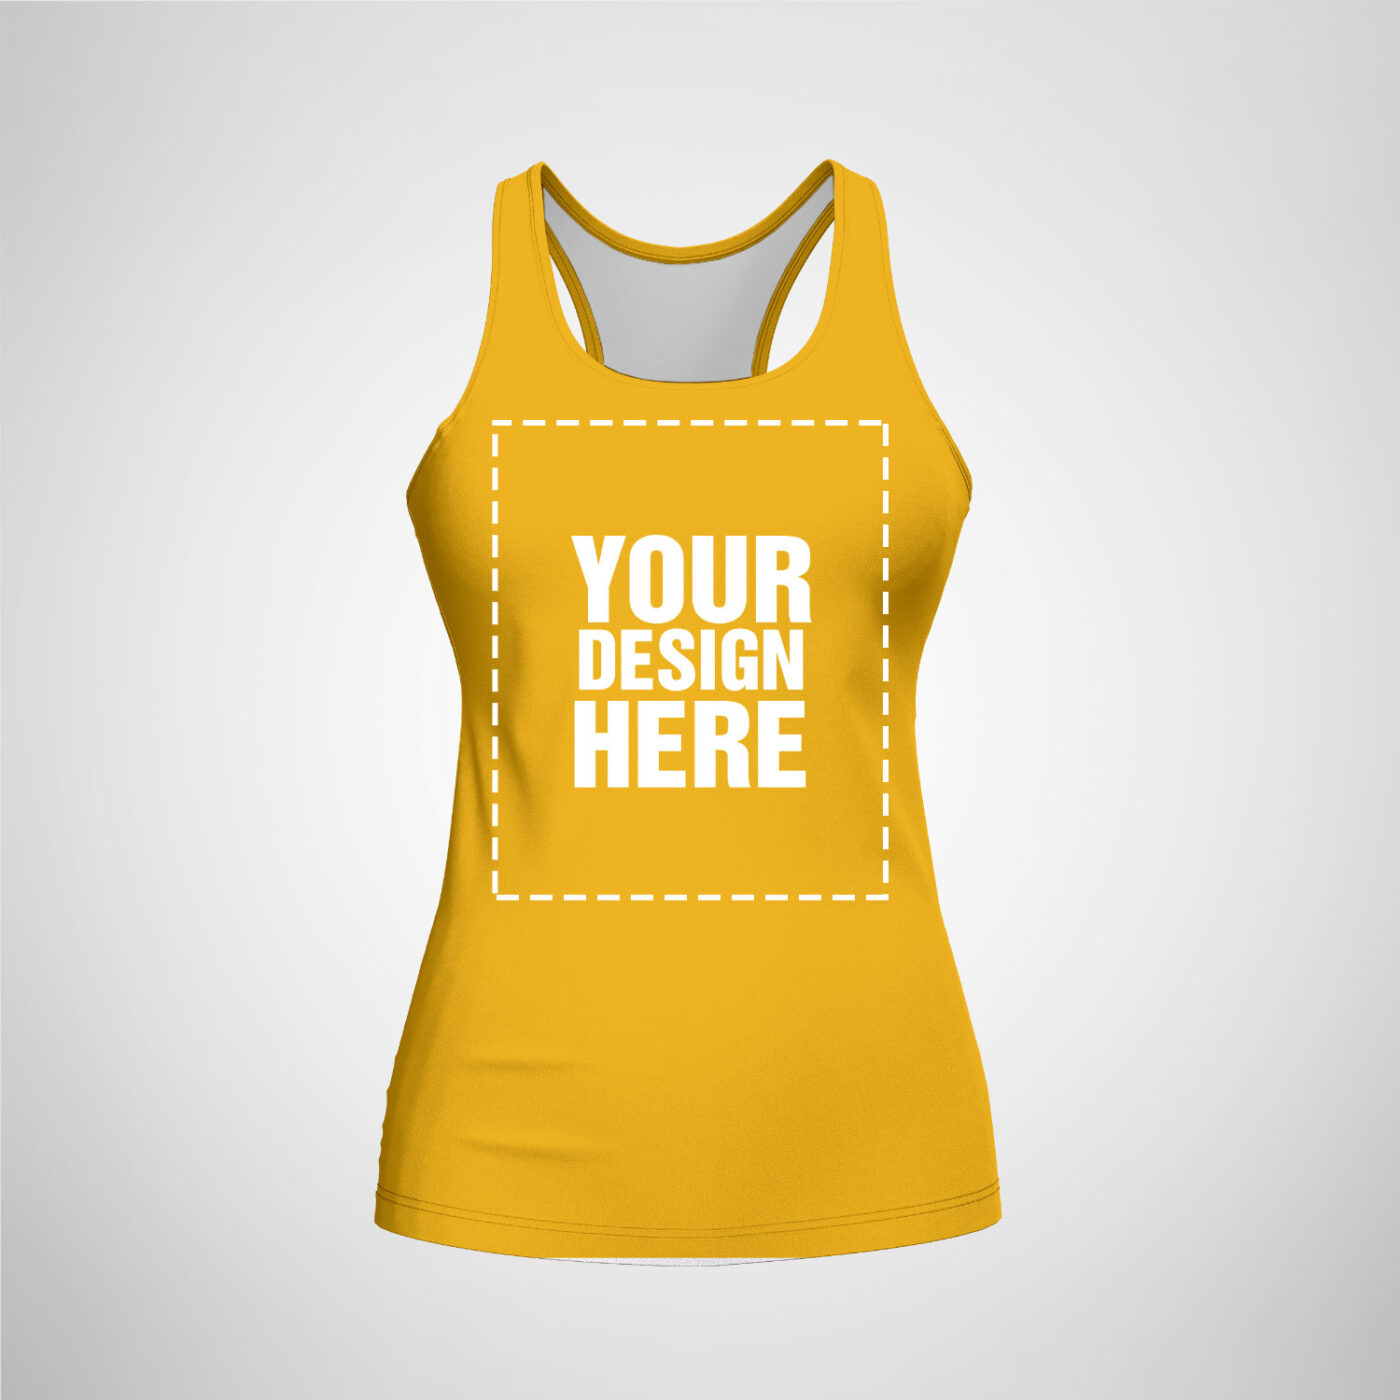 Womens Racerback - Golden Rod Yellow Color